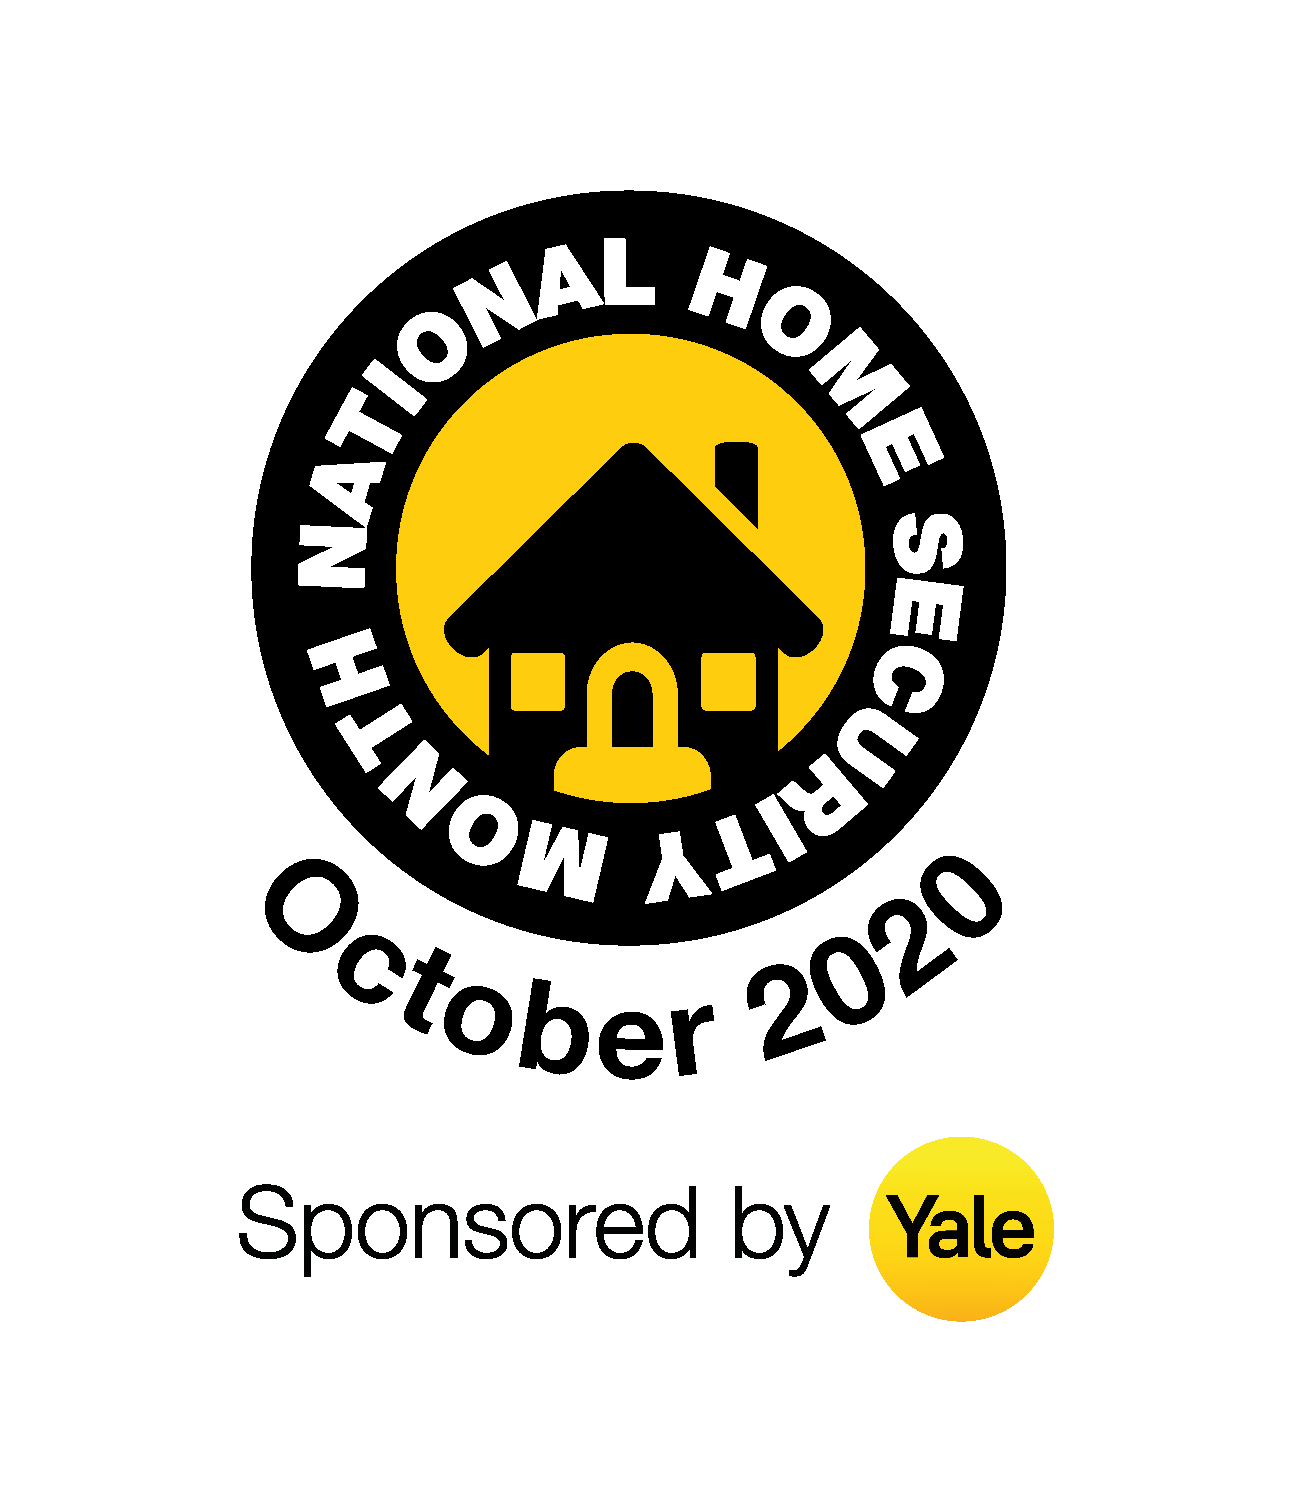 Week 5 of National Home Security Month 2020!